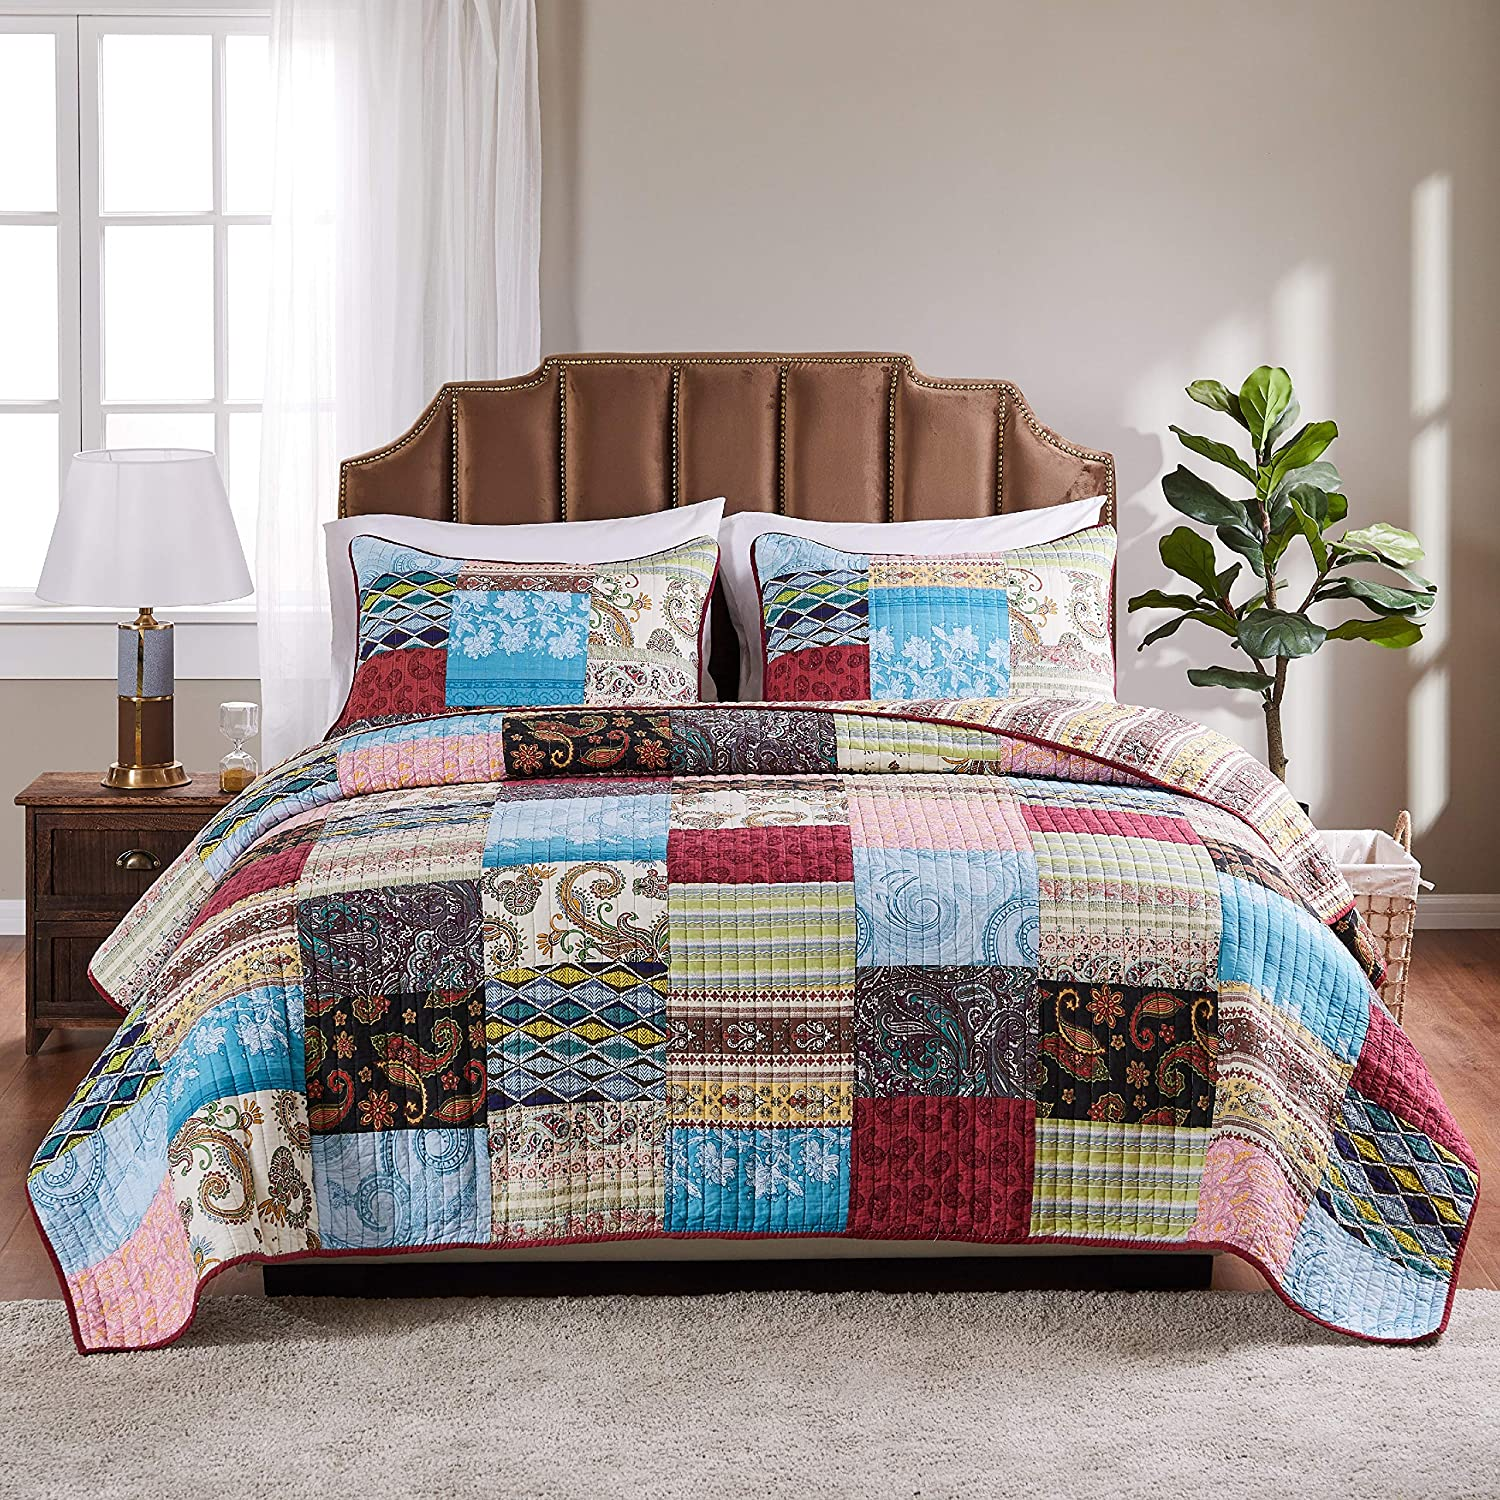 Greenland Home Bohemian Dream Quilt Set, 3-Piece King/Cal King